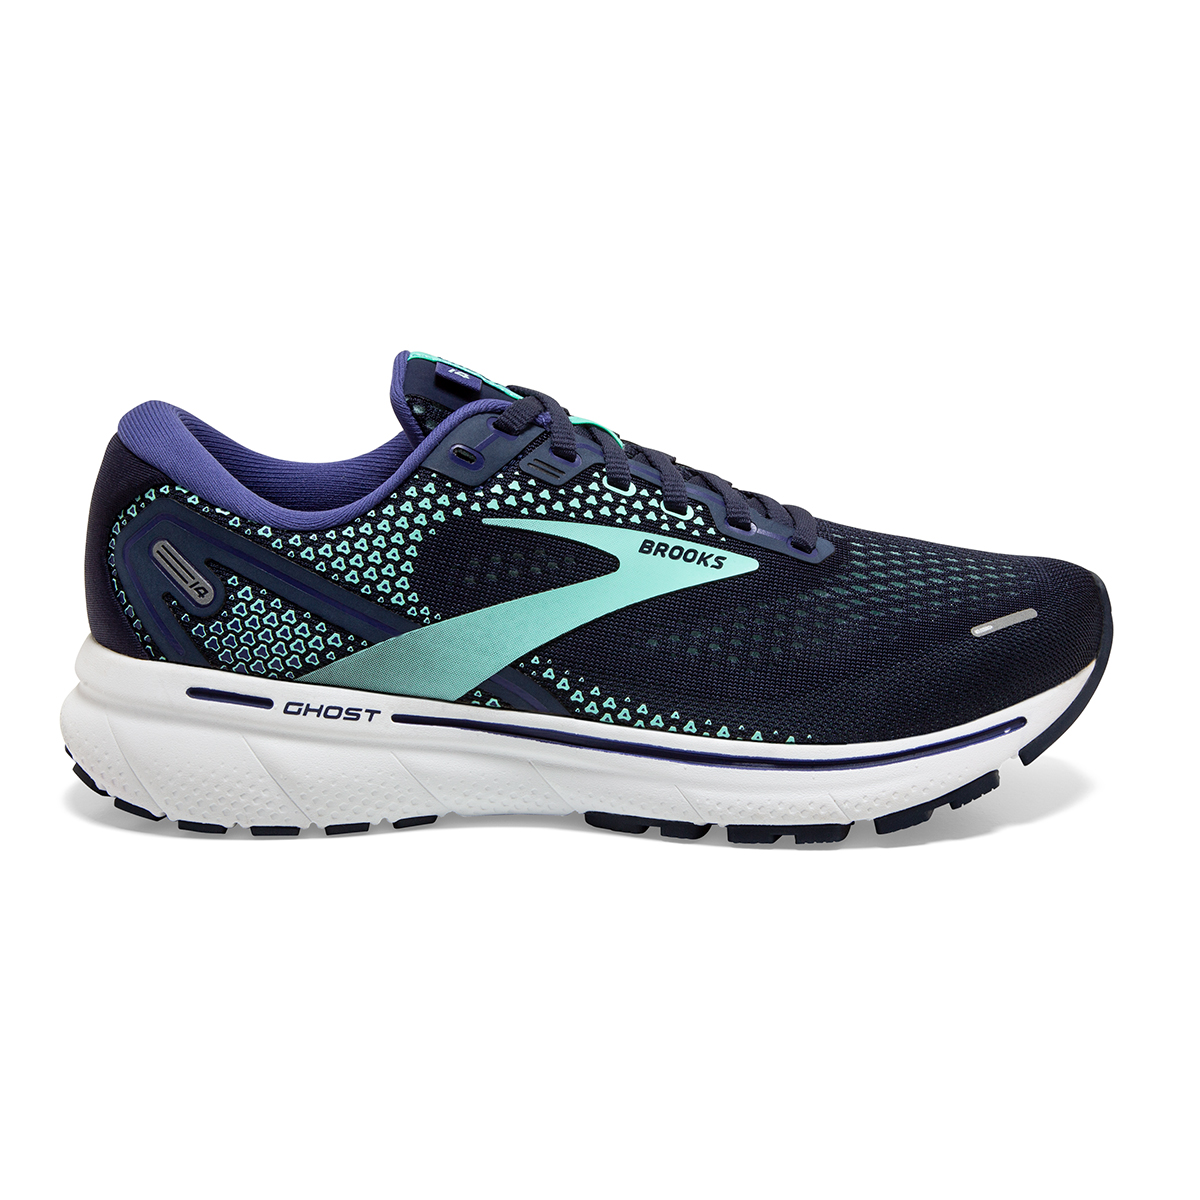 Women's Brooks Ghost 14 Running Shoe - Color: Peacoat/Yucca - Size: 5 - Width: Regular, Peacoat/Yucca, large, image 1